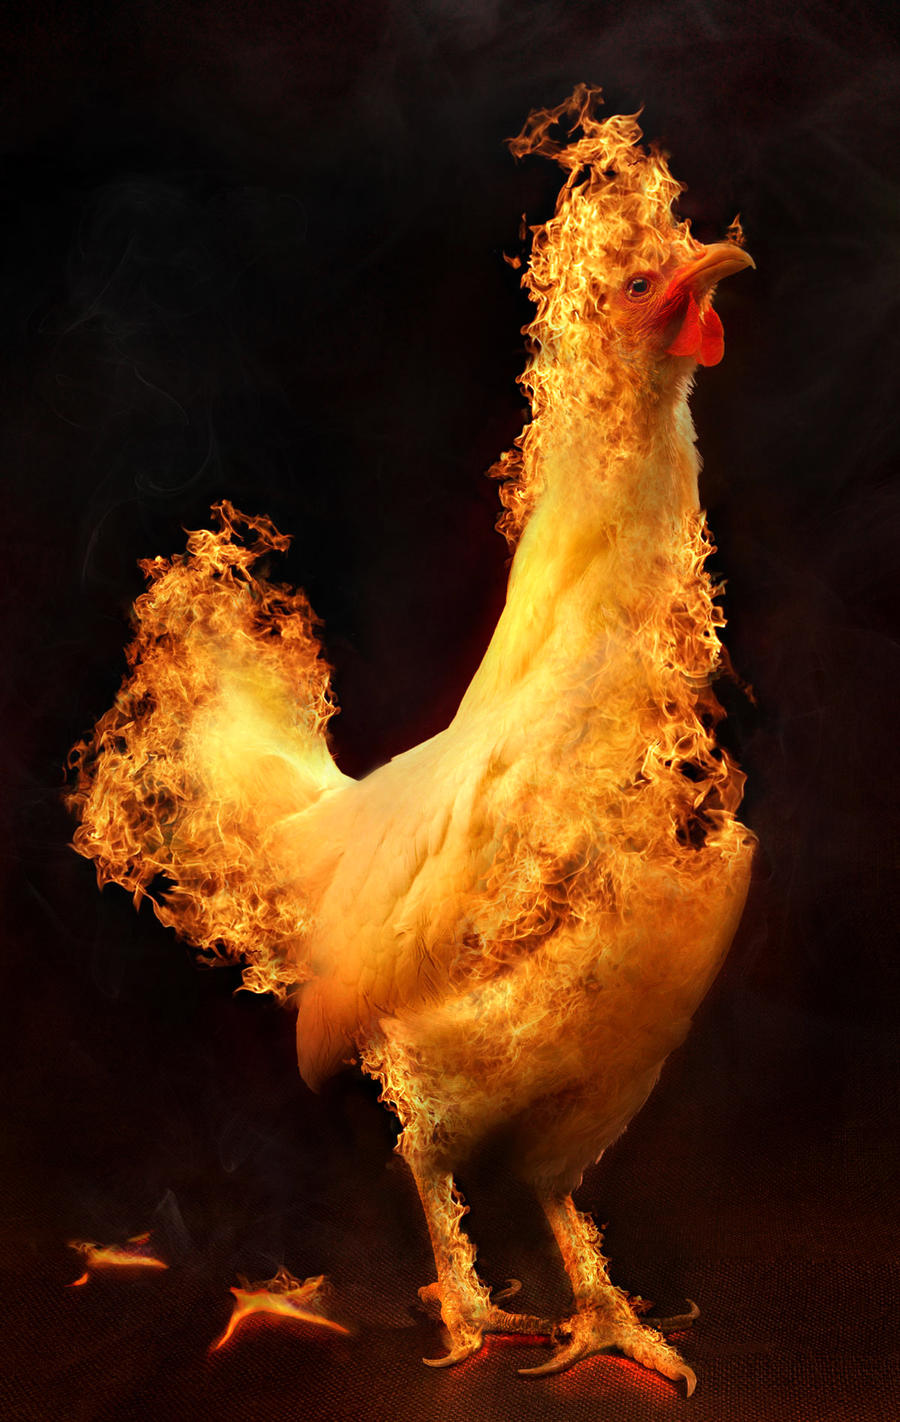 Fire Chicken by FlipFlopNinja